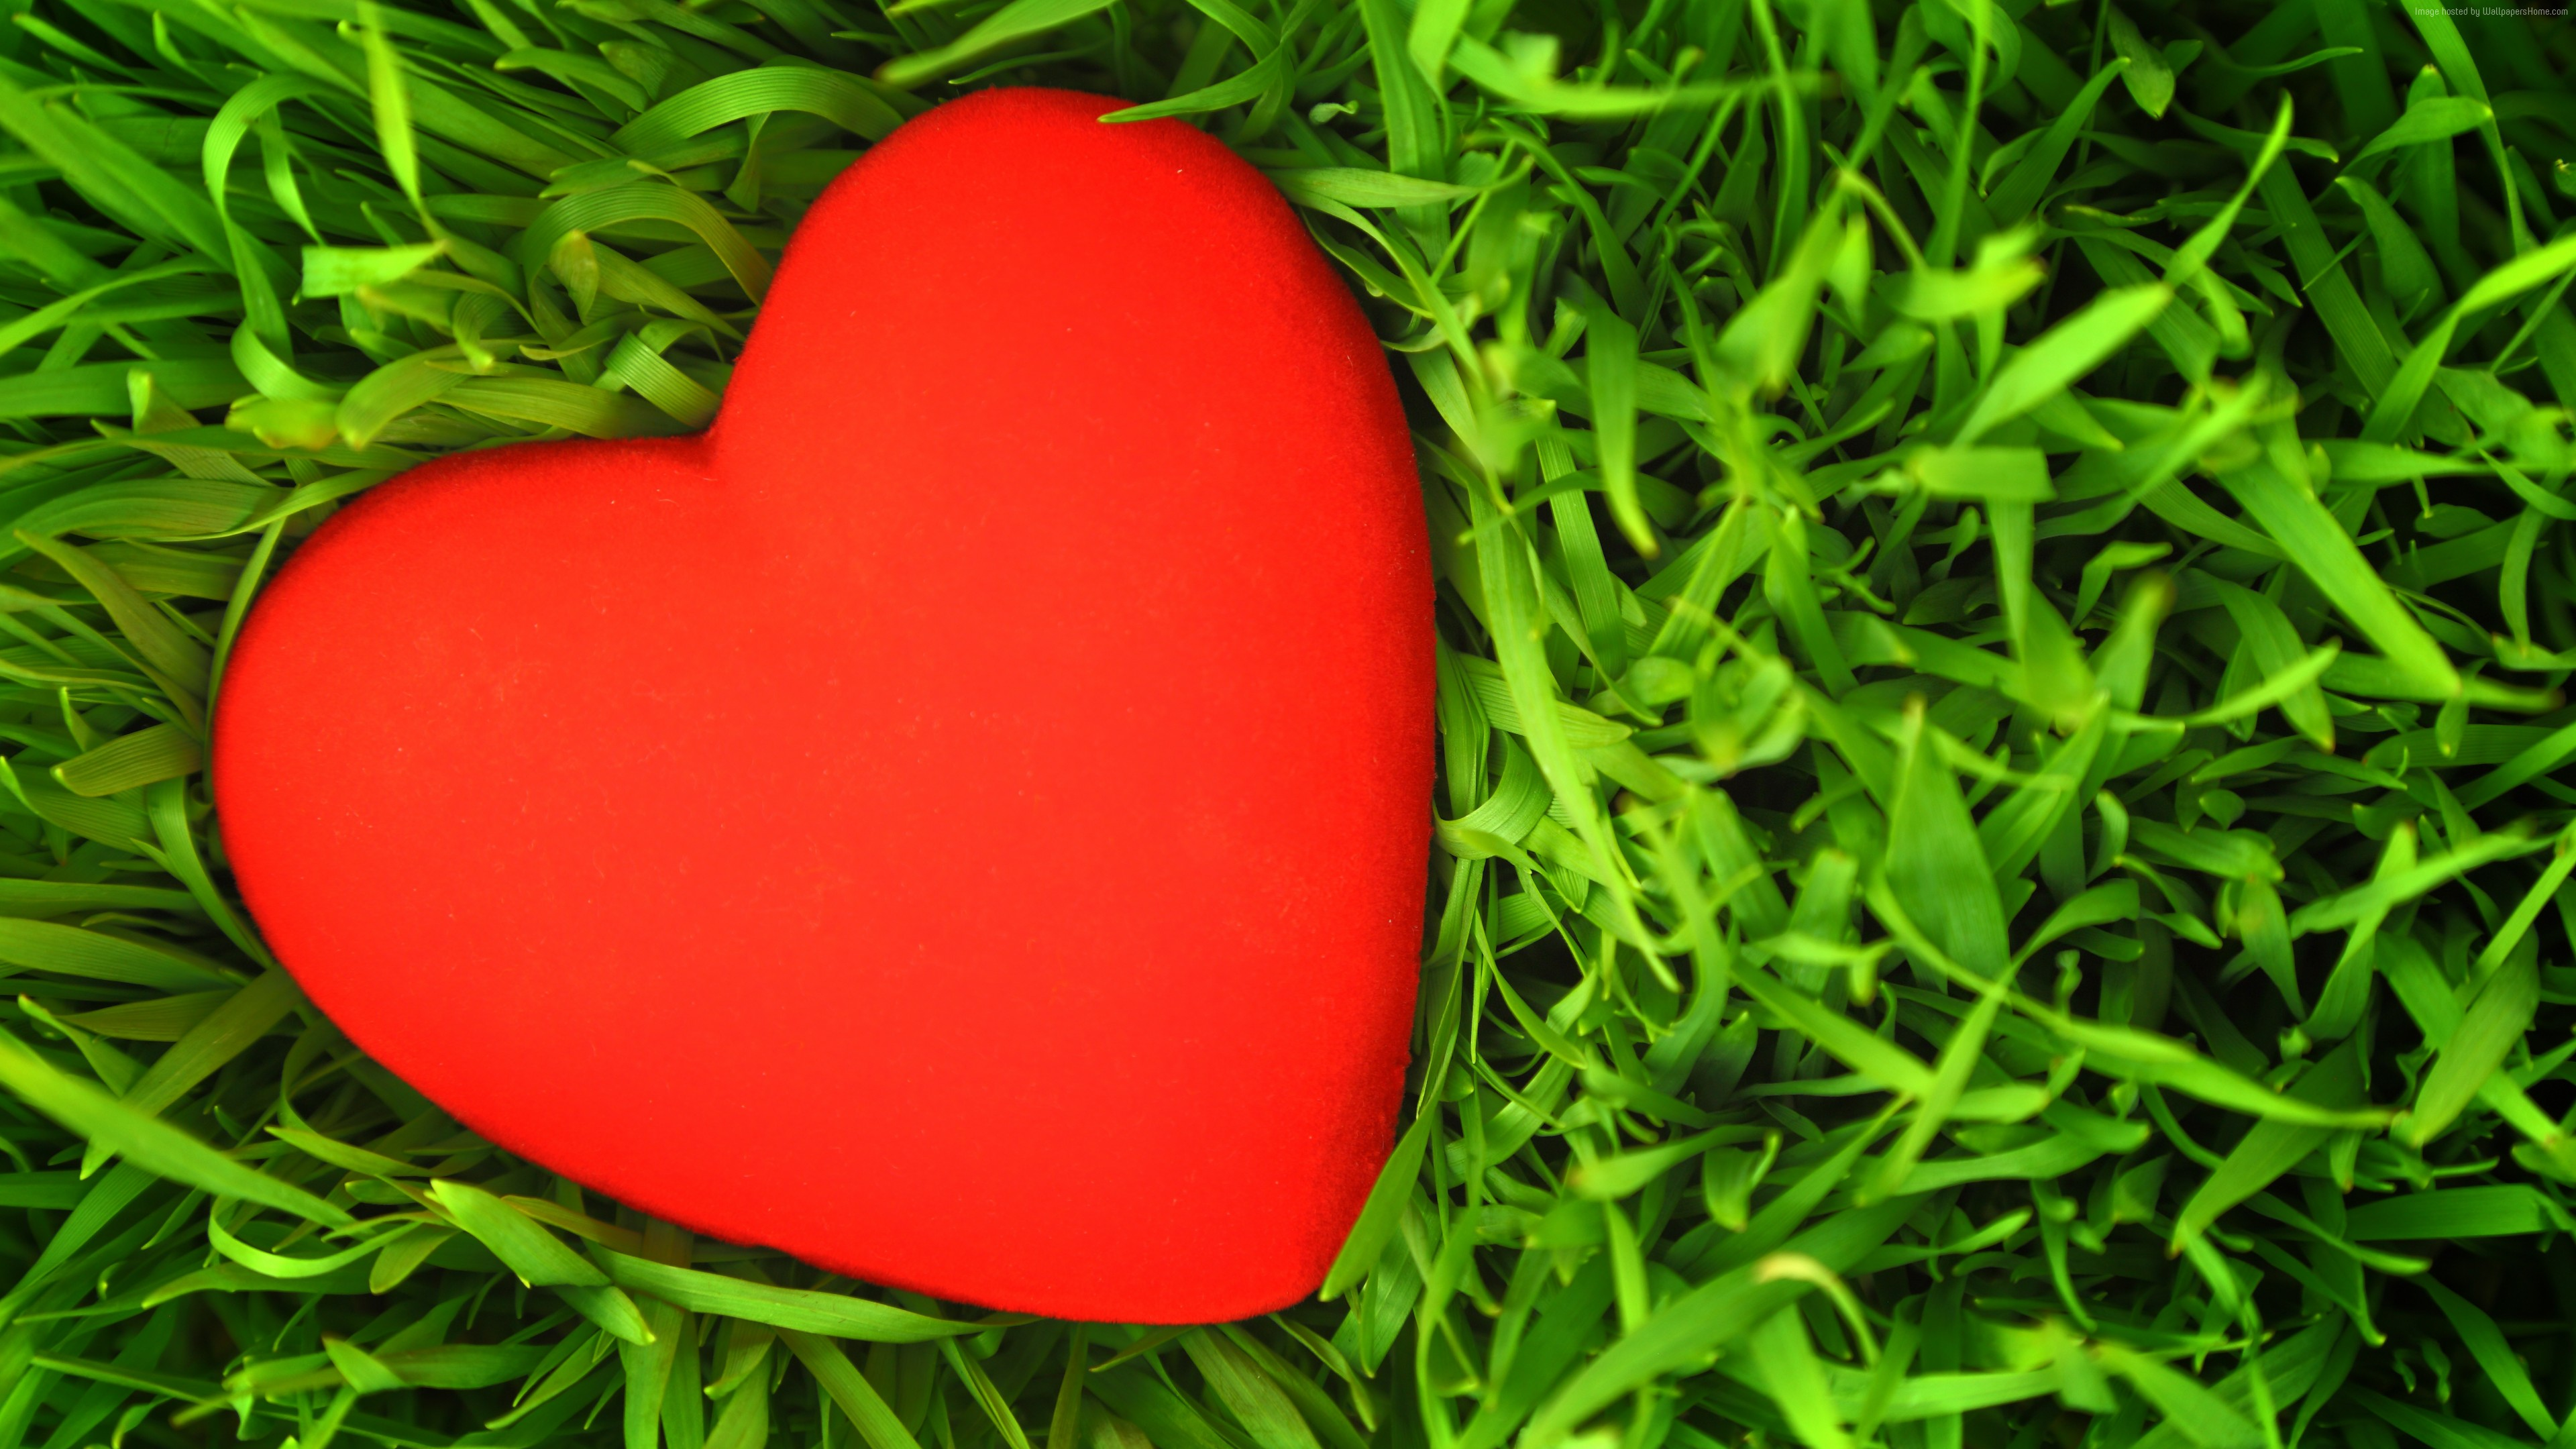 Stock Images love image, heart, grass, 5k, Stock Images